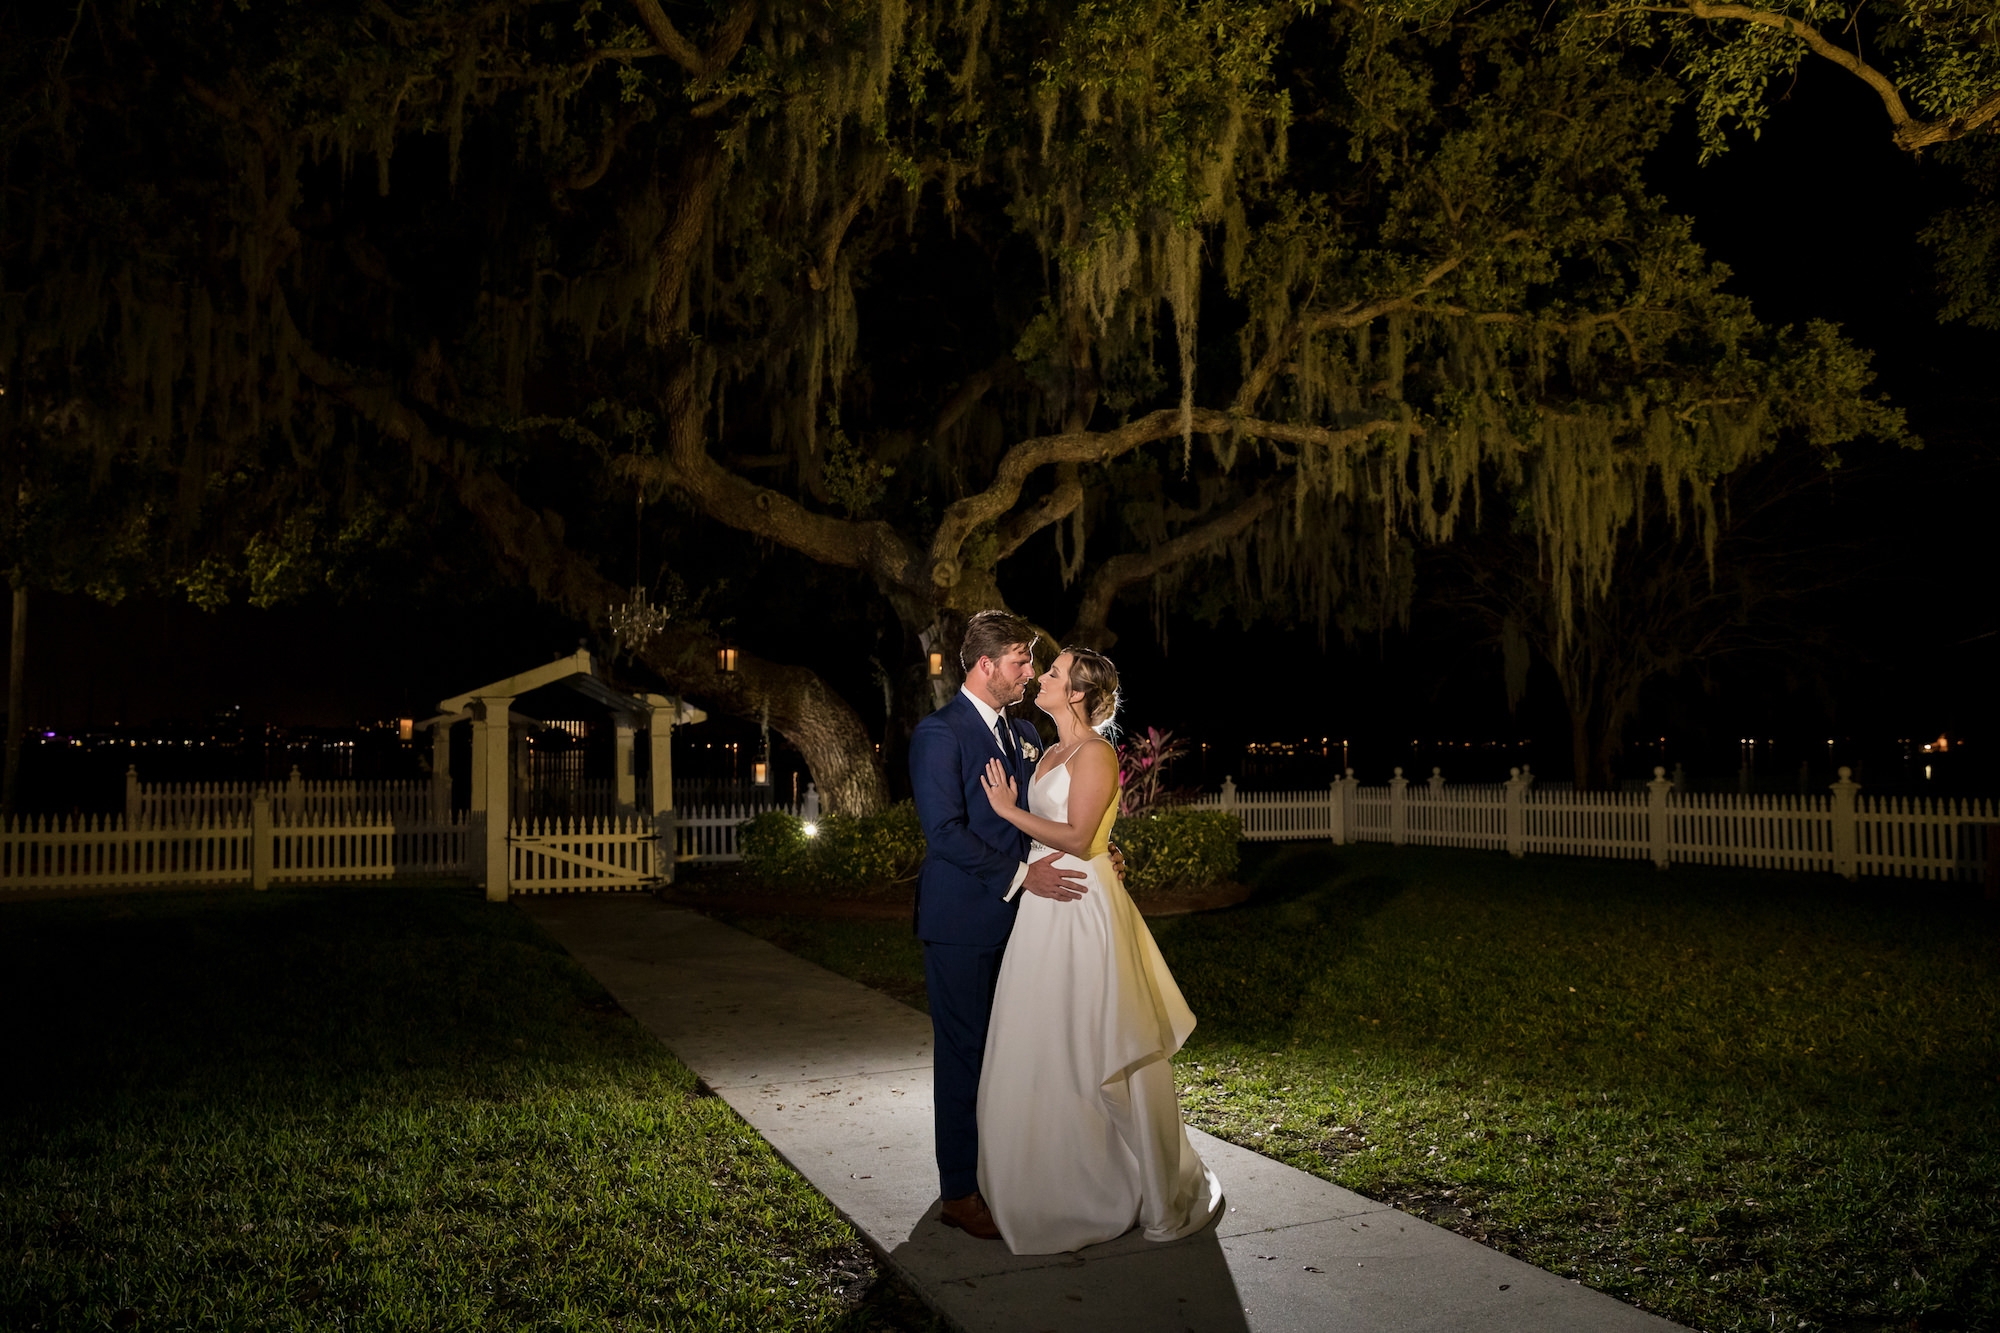 Nighttime Bride and Groom Wedding Portrait   Tampa Bay Waterfront Wedding Venue Palmetto Riverside Bed and Breakfast